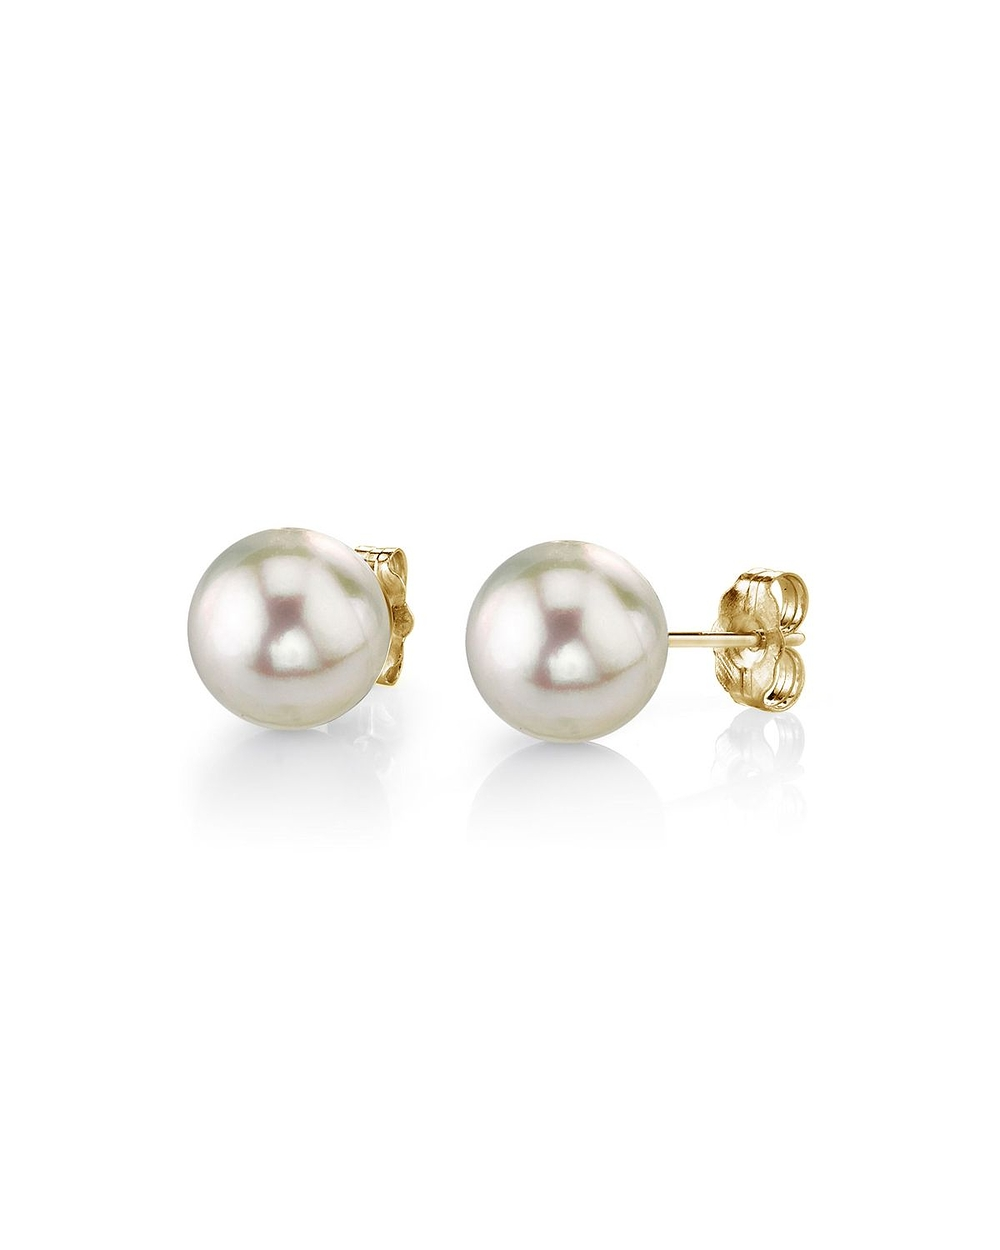 pearl earrings 5.0-5.5mm white akoya pearl stud earrings vthobce